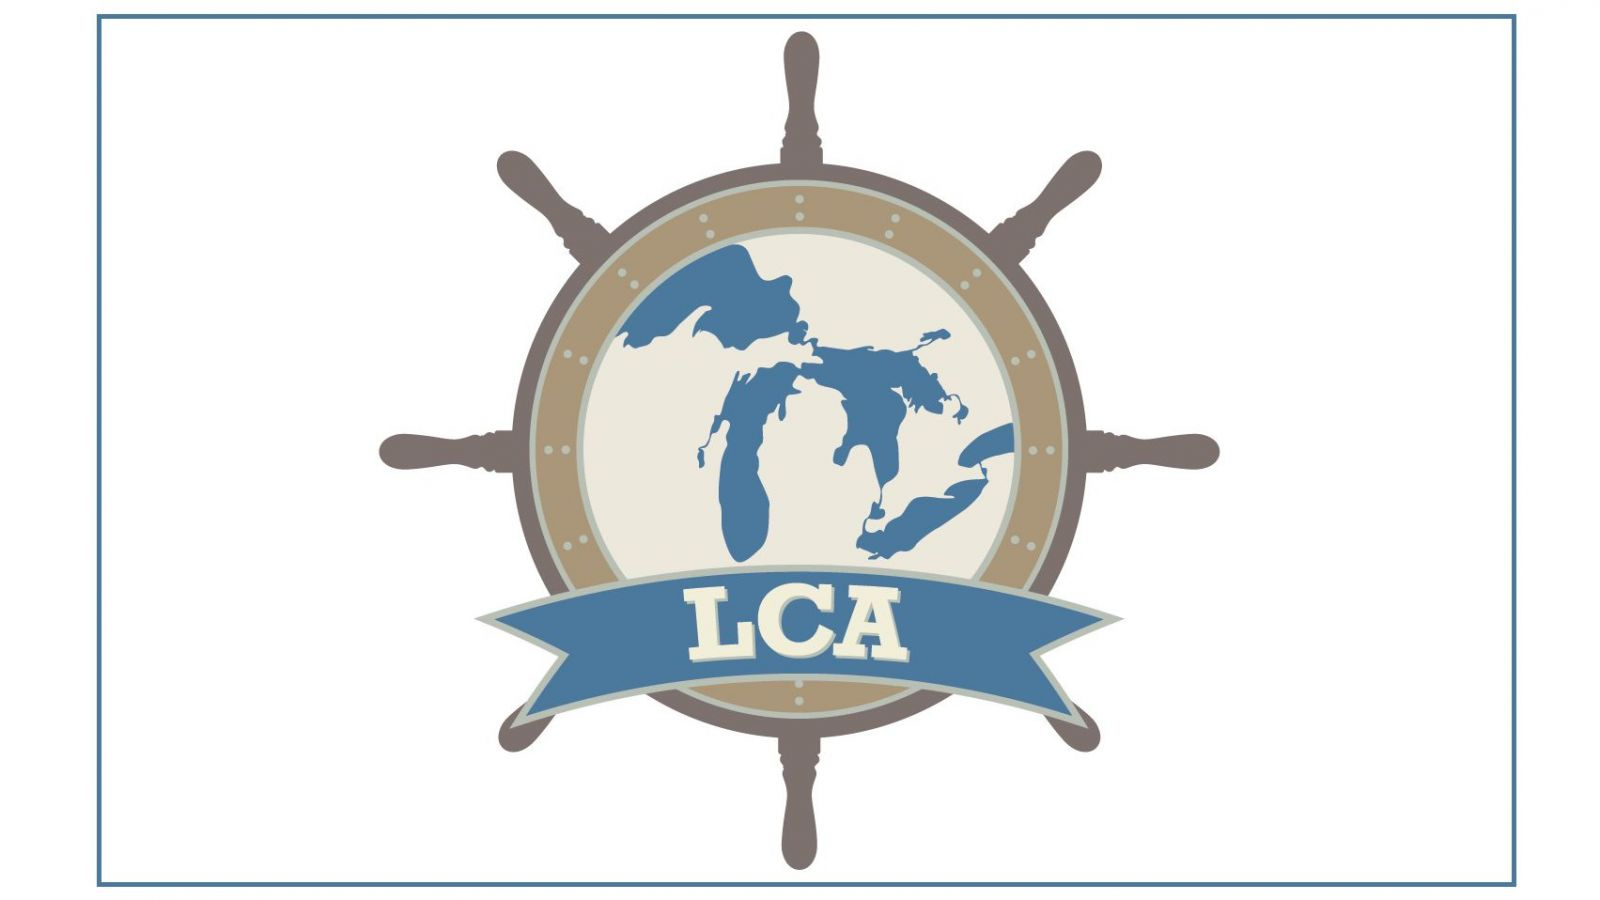 Lake carriers' association